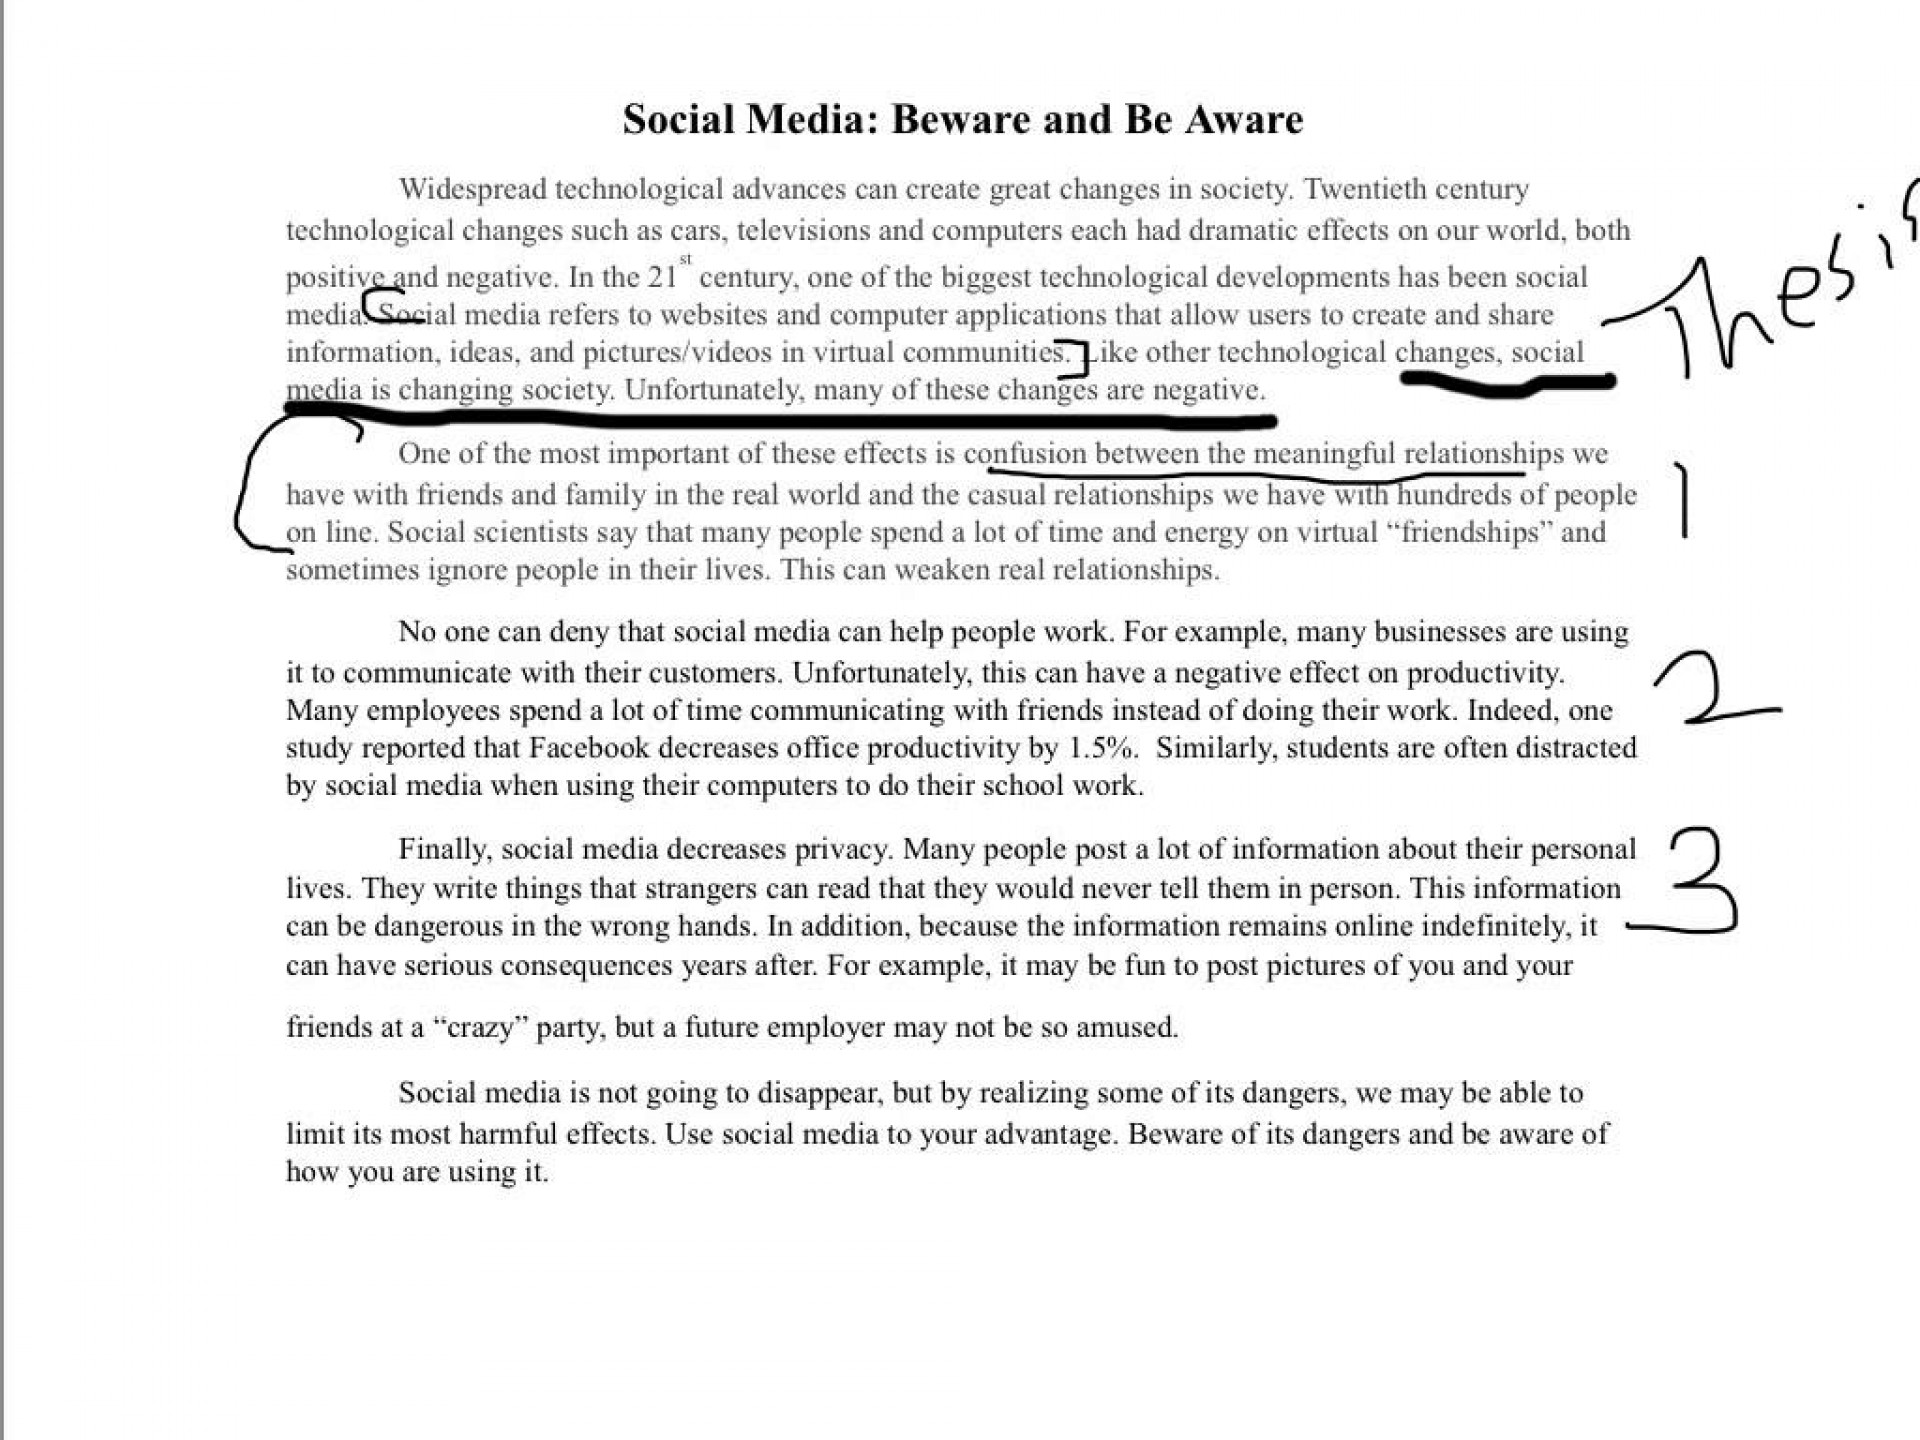 001 Social Media Example Essay In Pakistan Advantages Disadvantages Sosial Literacy Influence About Introduction And Networking Coverage Society Rules The World Freeentative Bias Amazing Argumentative Pdf Marketing 1920